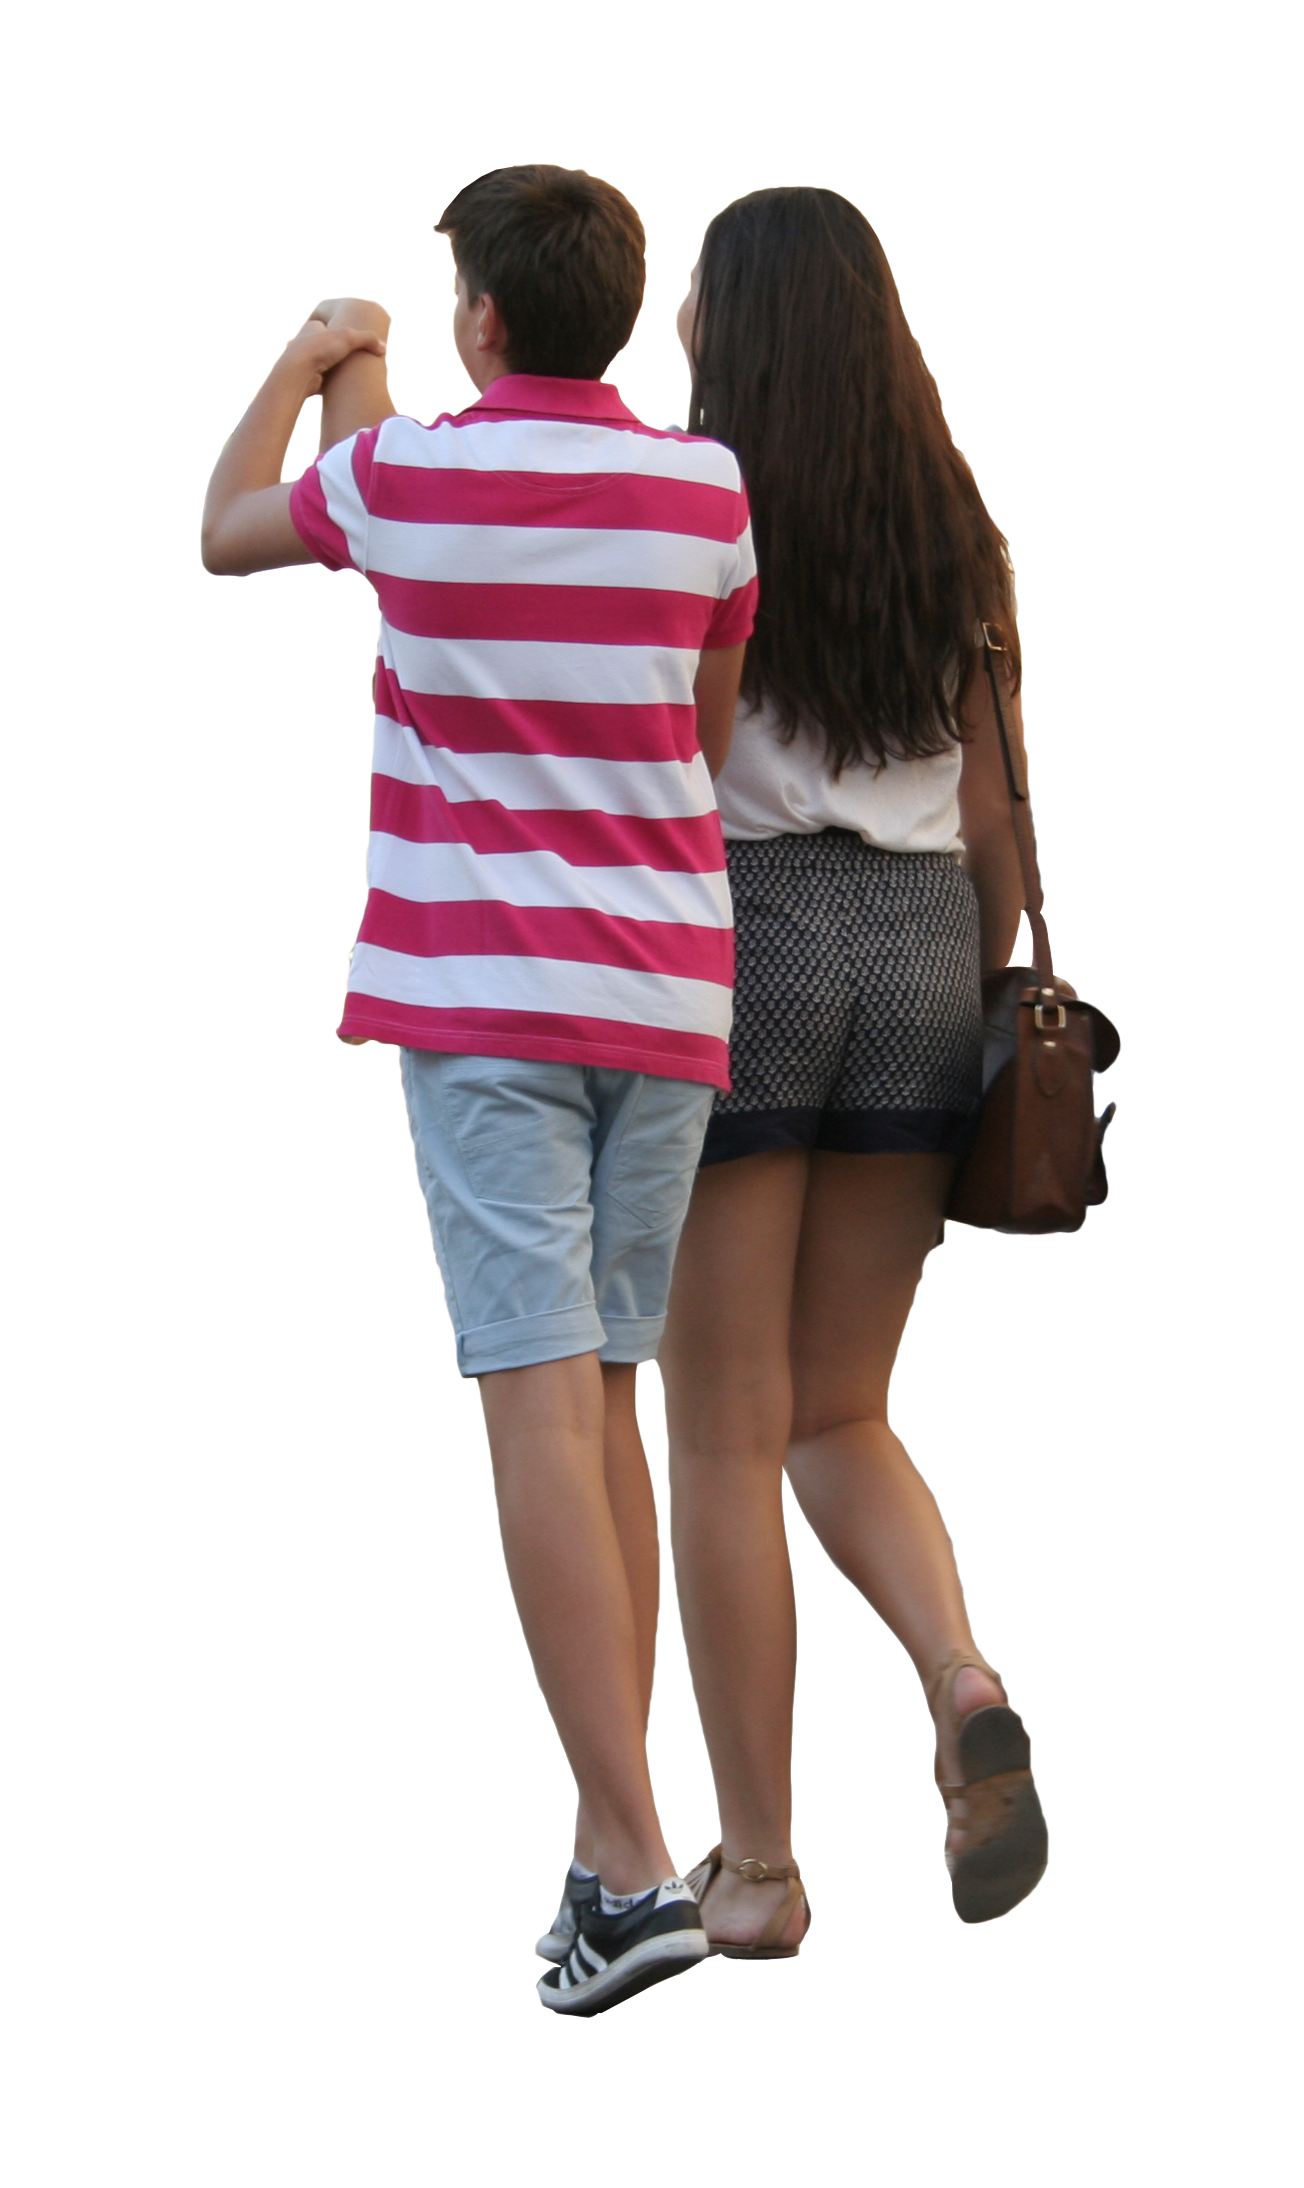 Person walking side view png. Couple free cut out